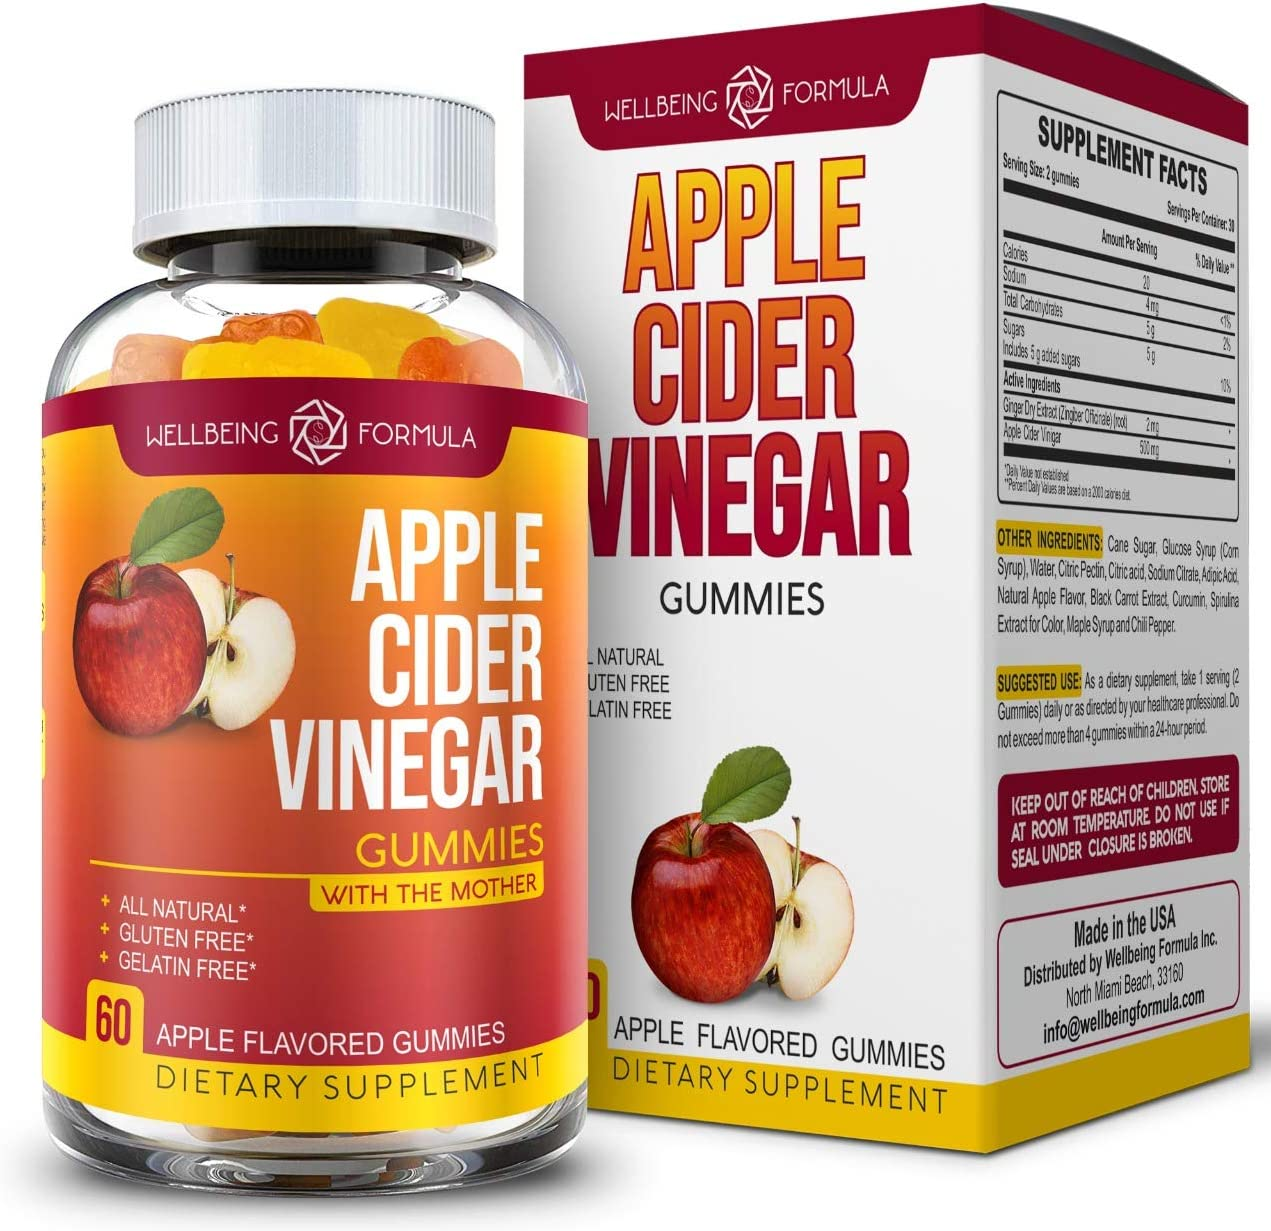 Pure Max 85% OFF Apple Cider Vinegar Baltimore Mall Gummies Ginger-Raw ACV with Unfiltered